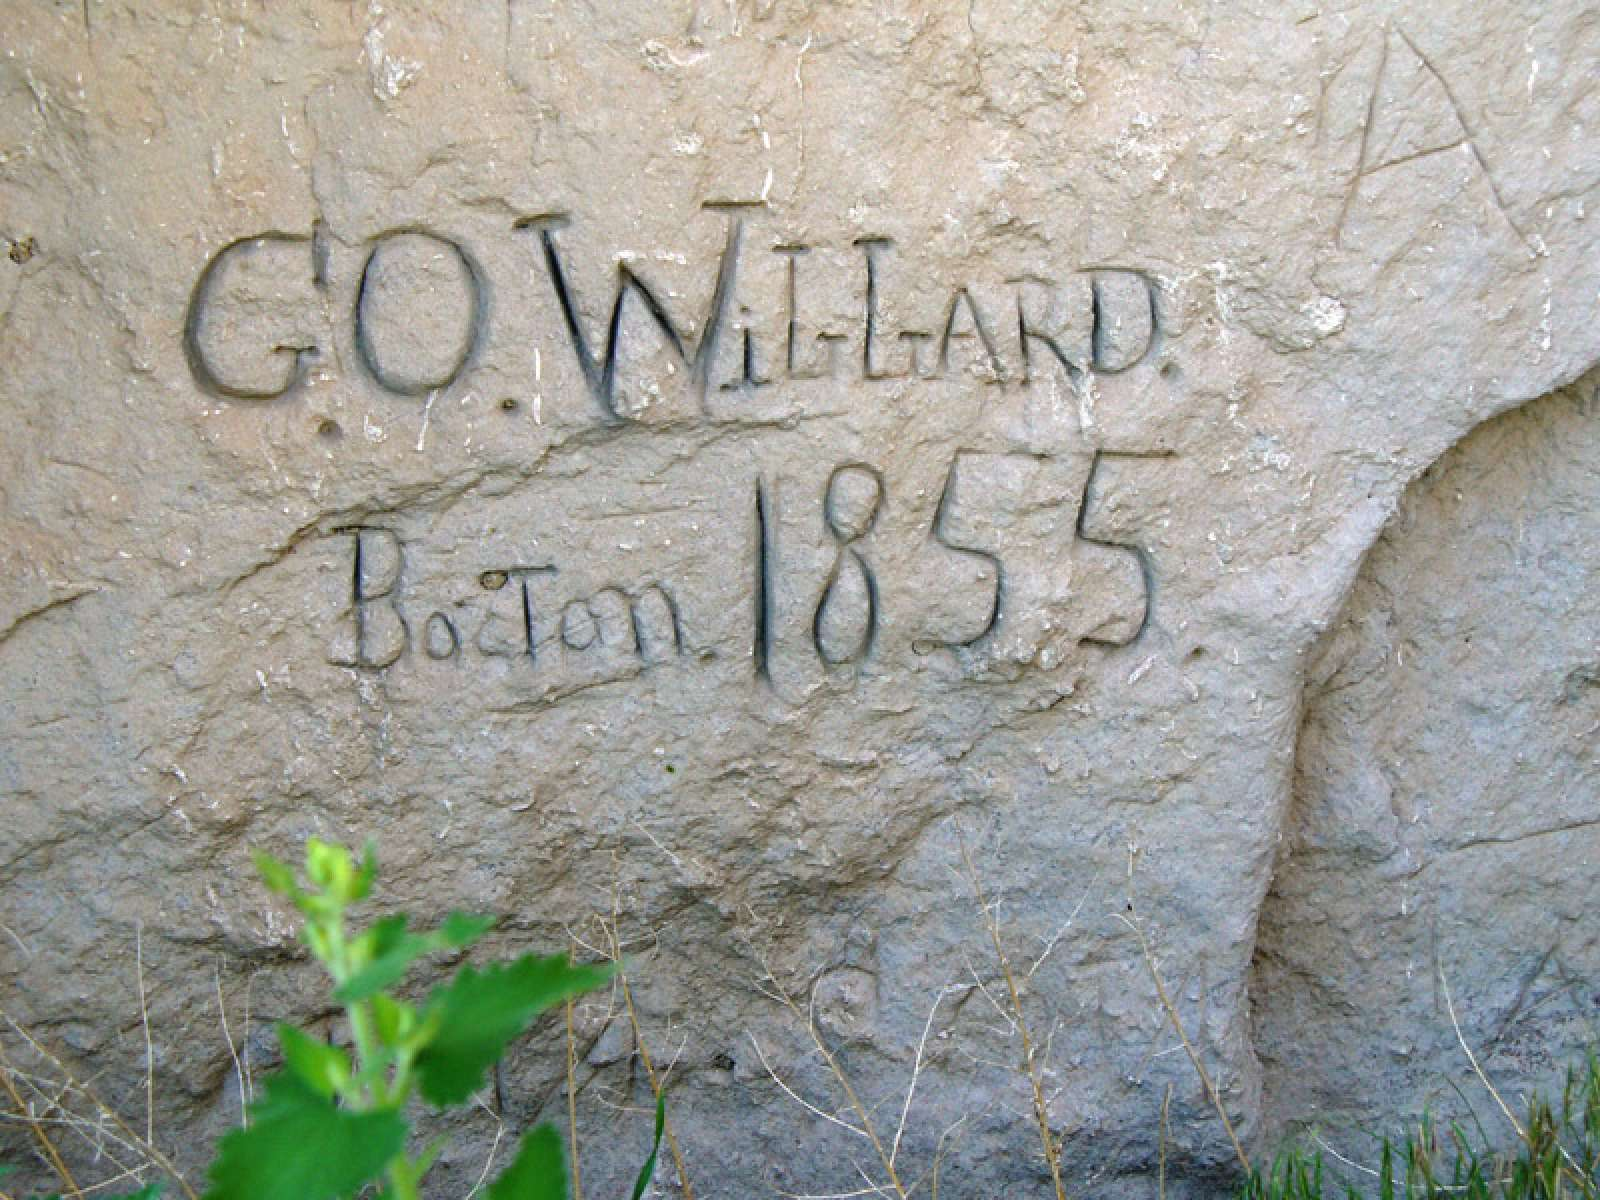 A member of the Willard family from Boston passed this way in 1855.